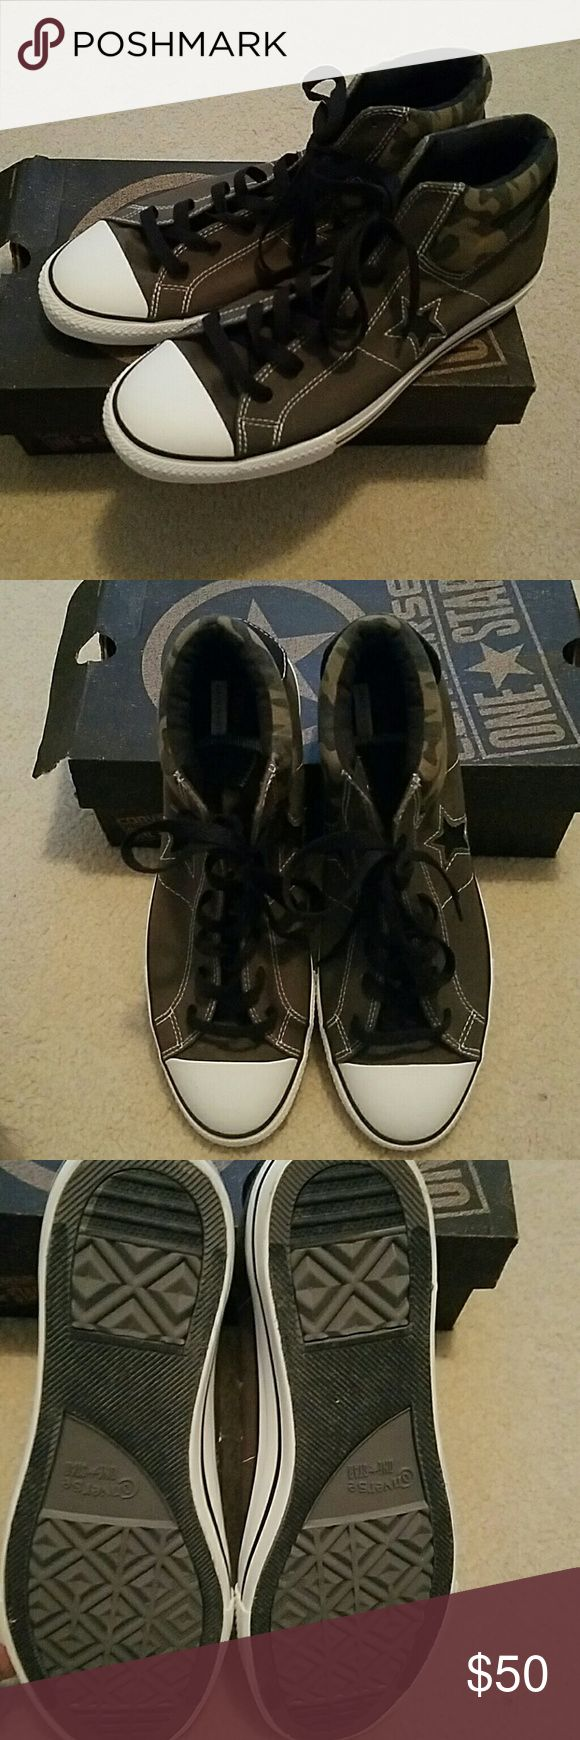 Men's Converse All Stars NWB Army green and camo converse chucks. Never worn Converse Shoes Sneakers